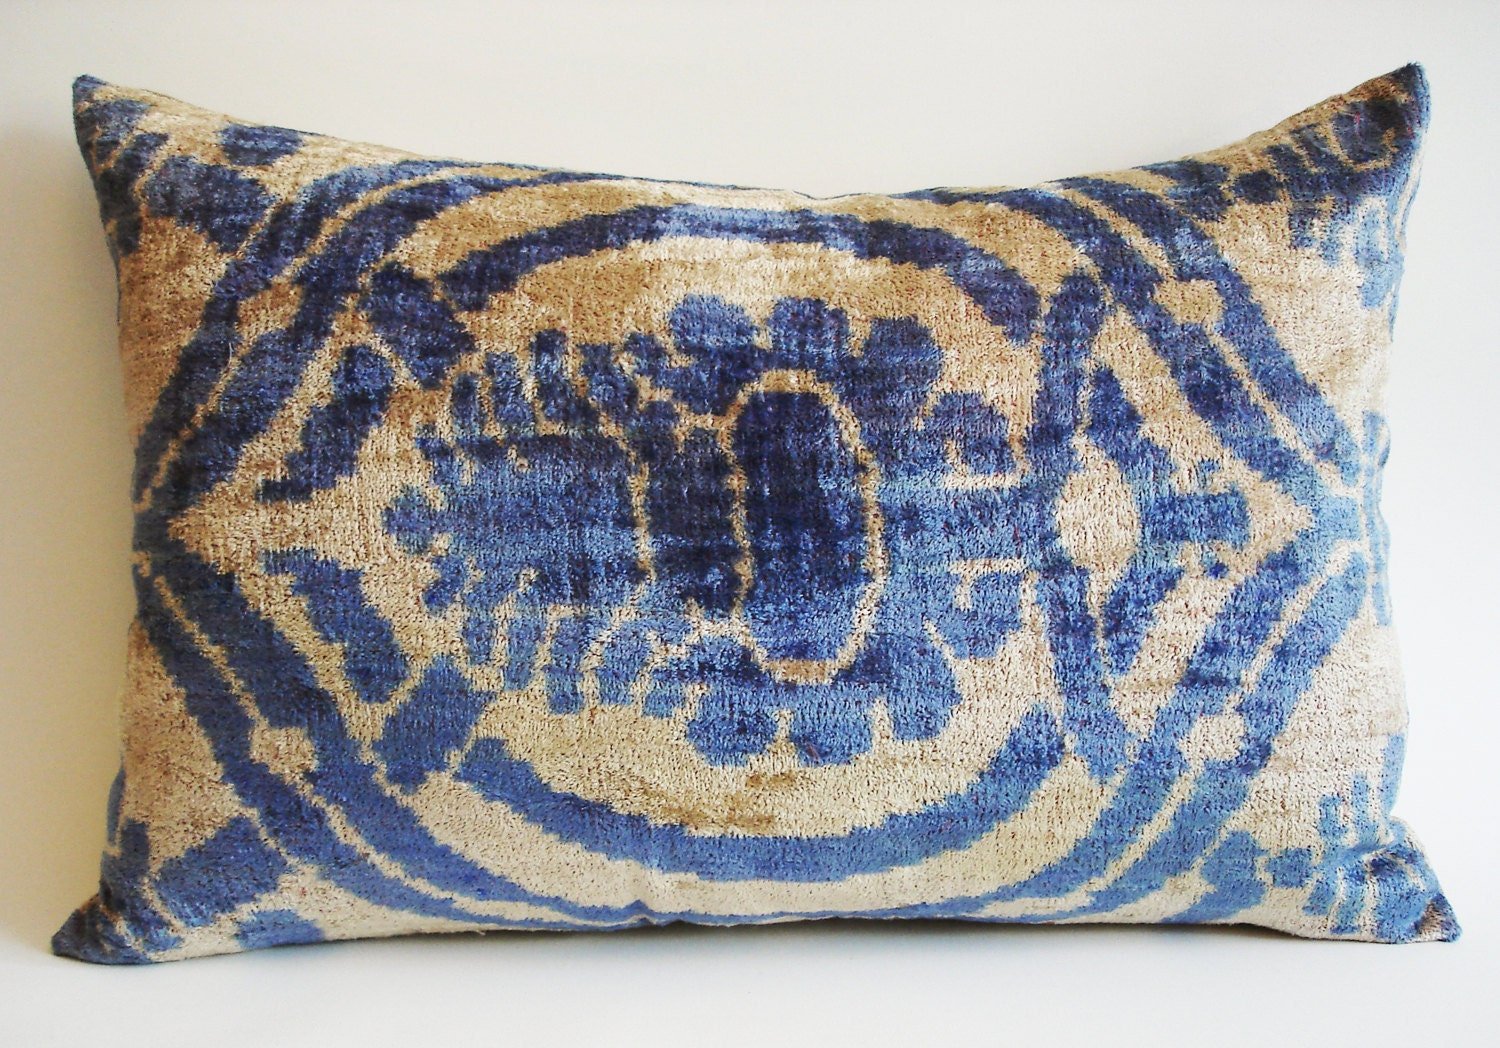 Sukan / SALE - Soft Hand Woven - Silk Velvet Ikat Pillow Cover - 14x22 - Blue Beige Color